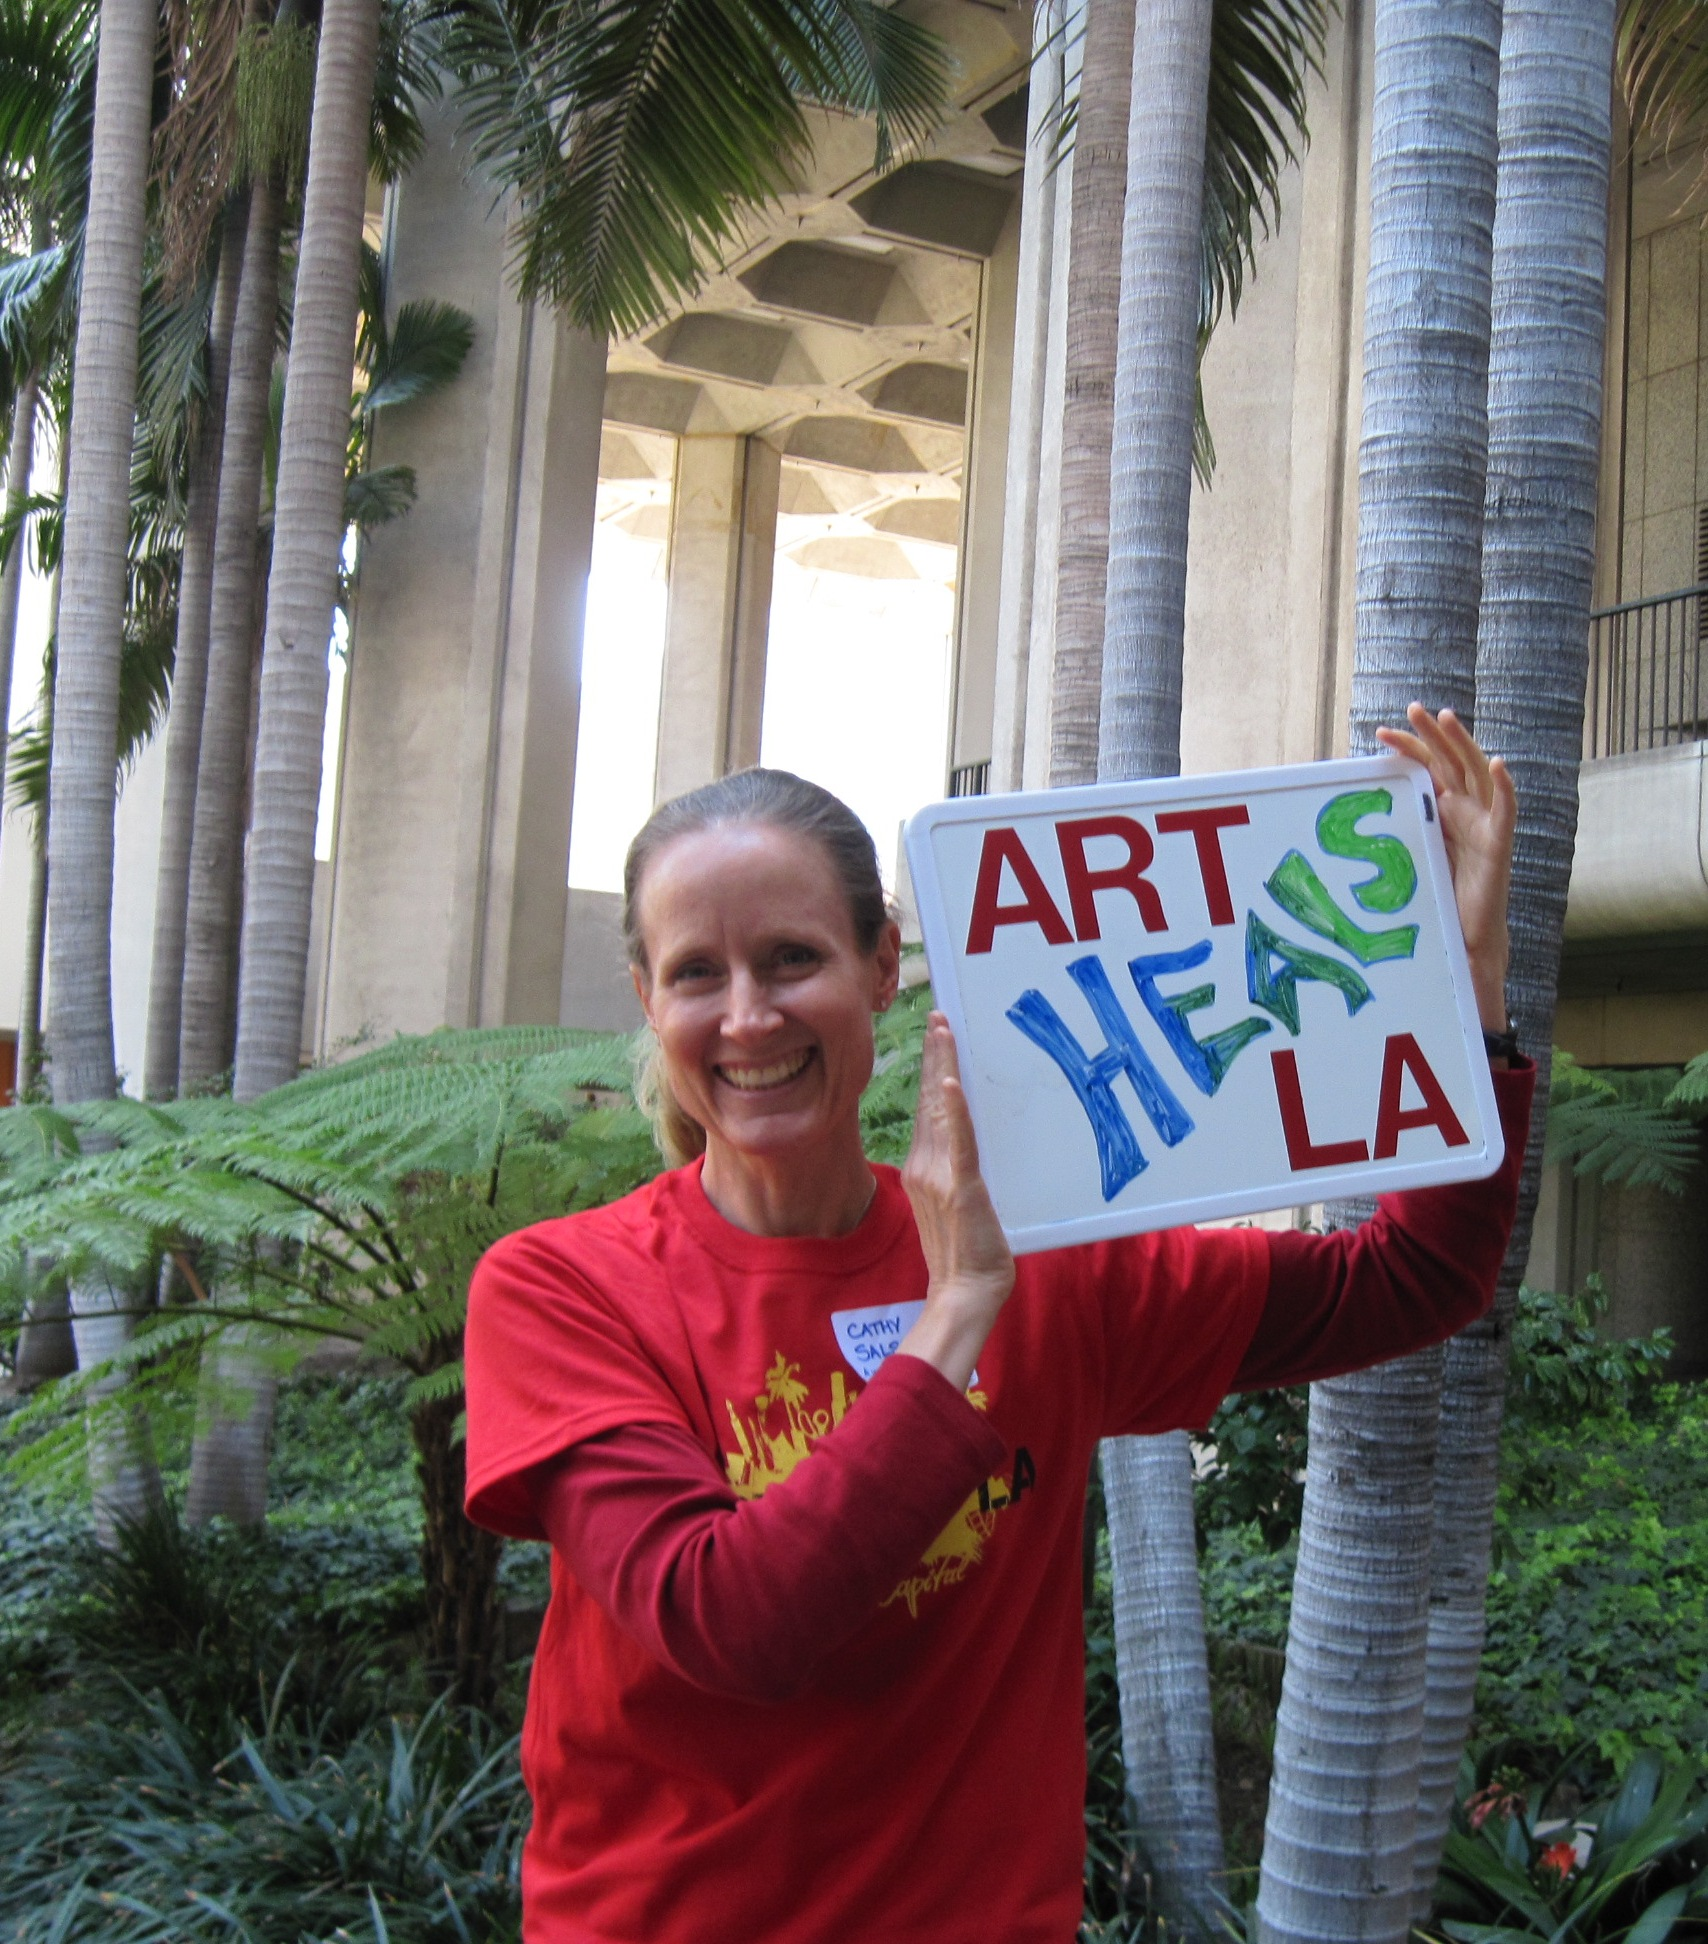 ARTWORK: Arts Day LA 2014